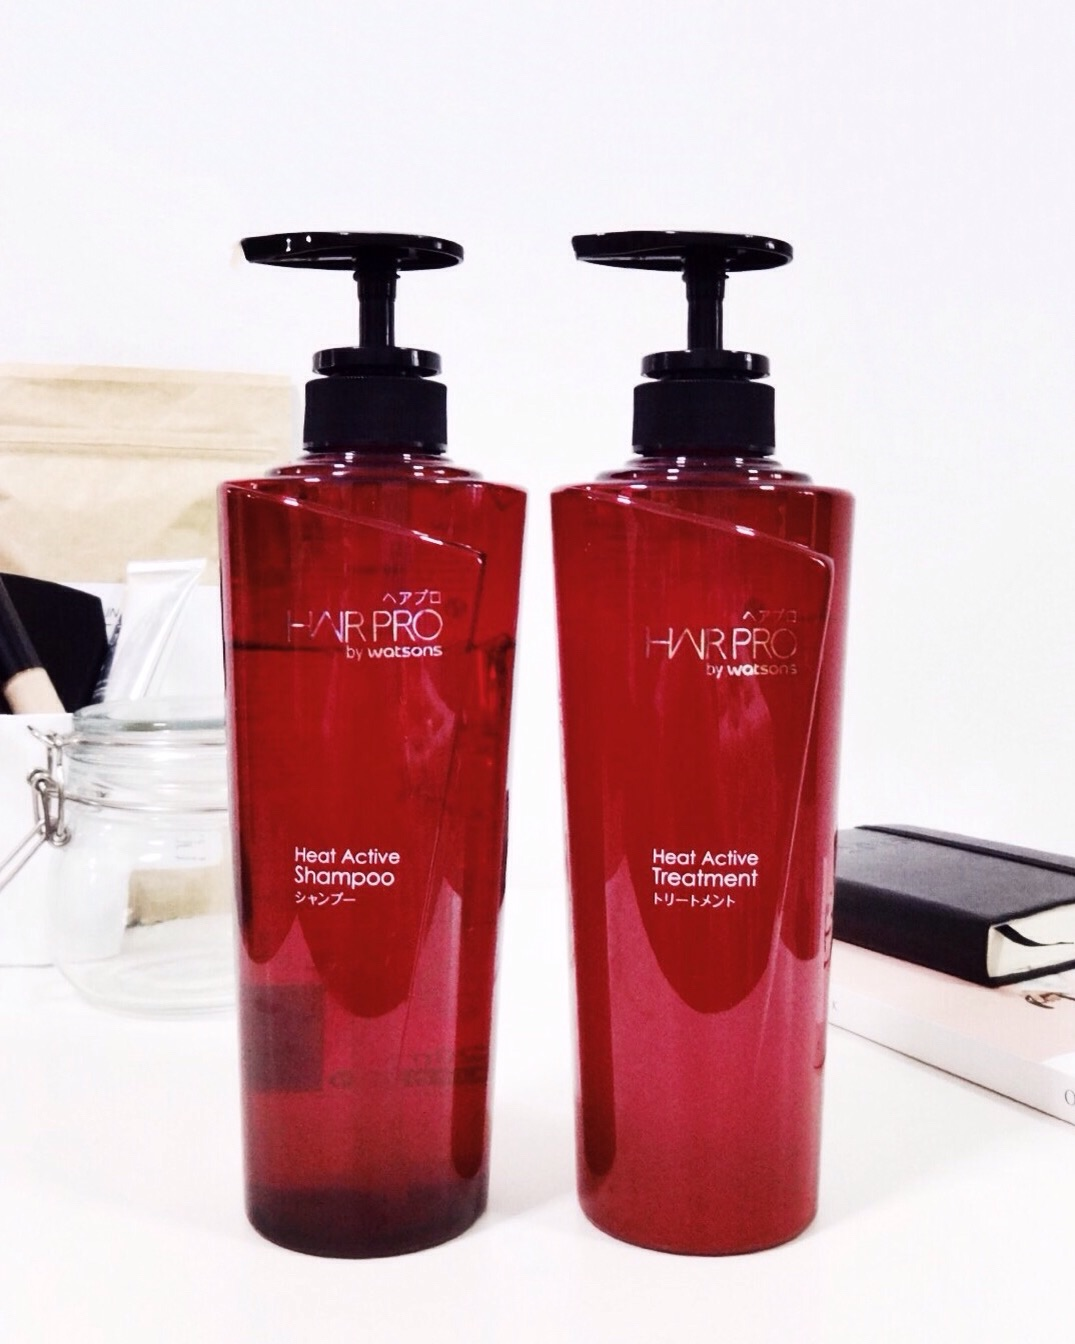 In photo: Hair Pro by Watsons Heat Active Shampoo (Left) + Hair Pro by Watsons Heat Active Treatment (Right)